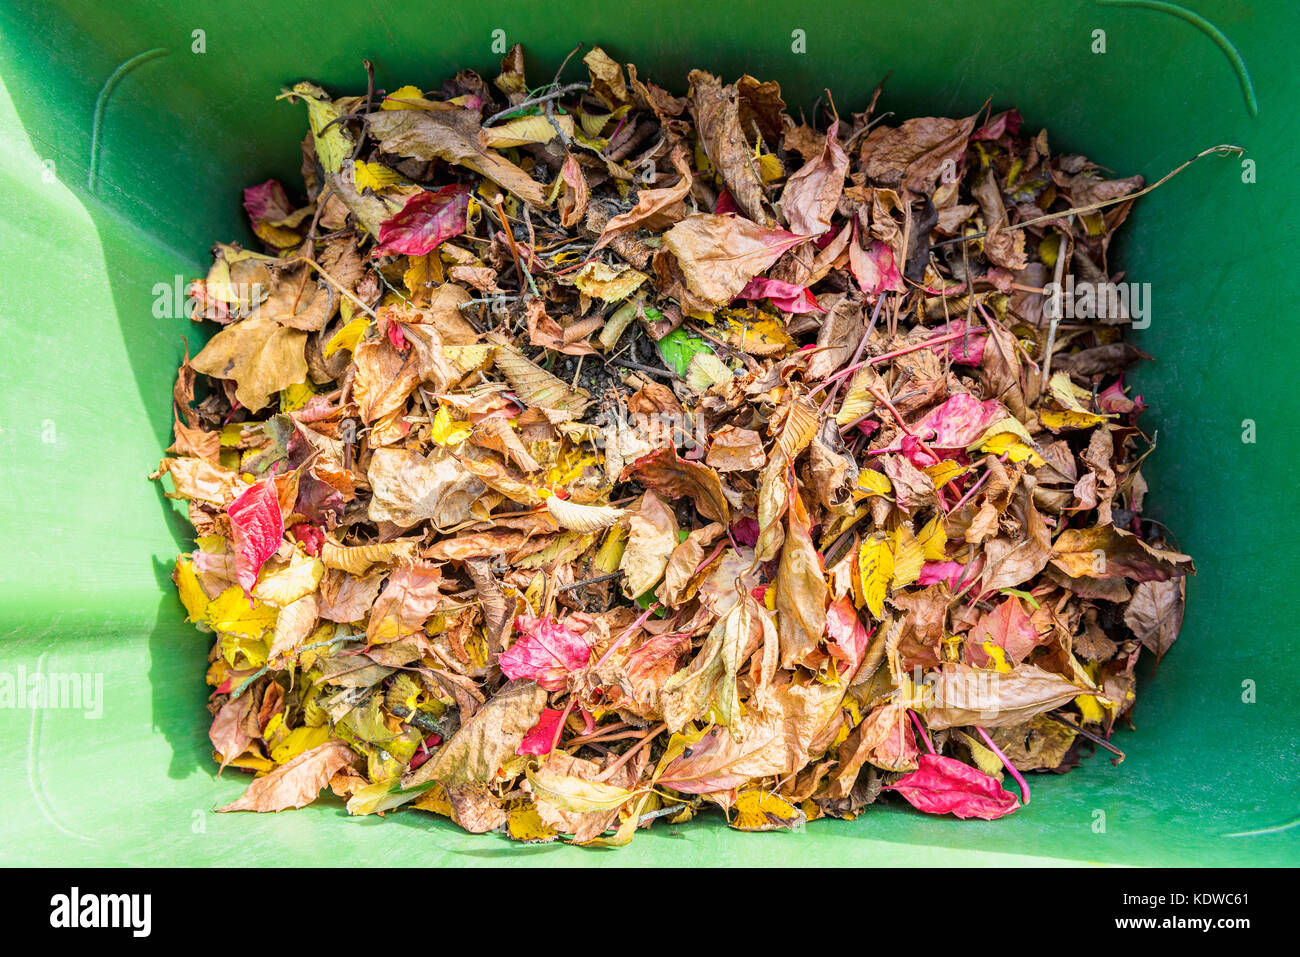 Multi Colored Autumn Leaves inside of Garbage Can, looking down - Stock Image